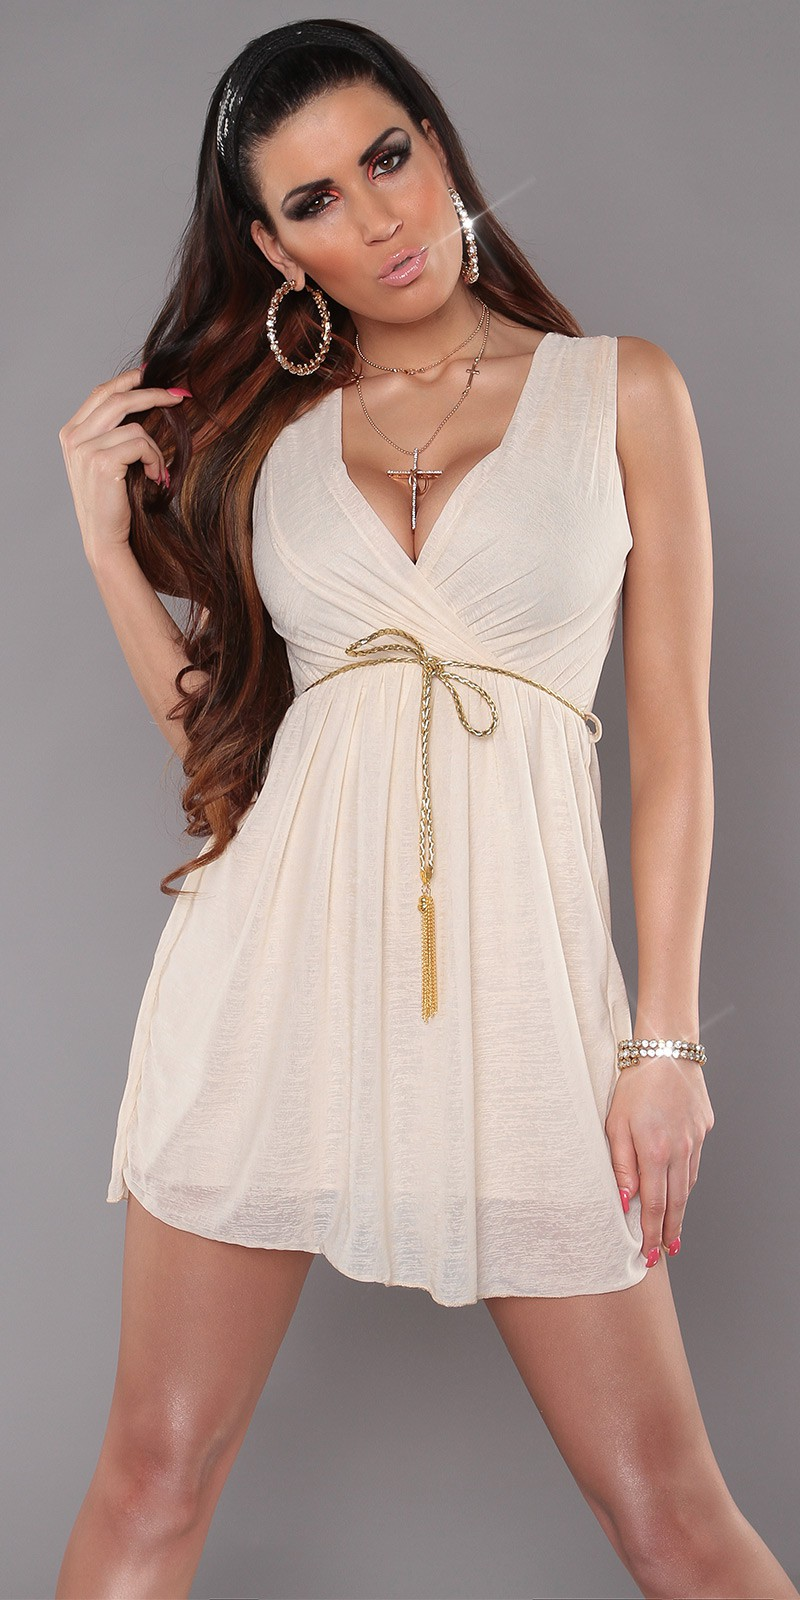 Beige Sexy KouCla Minidress With V-Neck Snd Belt